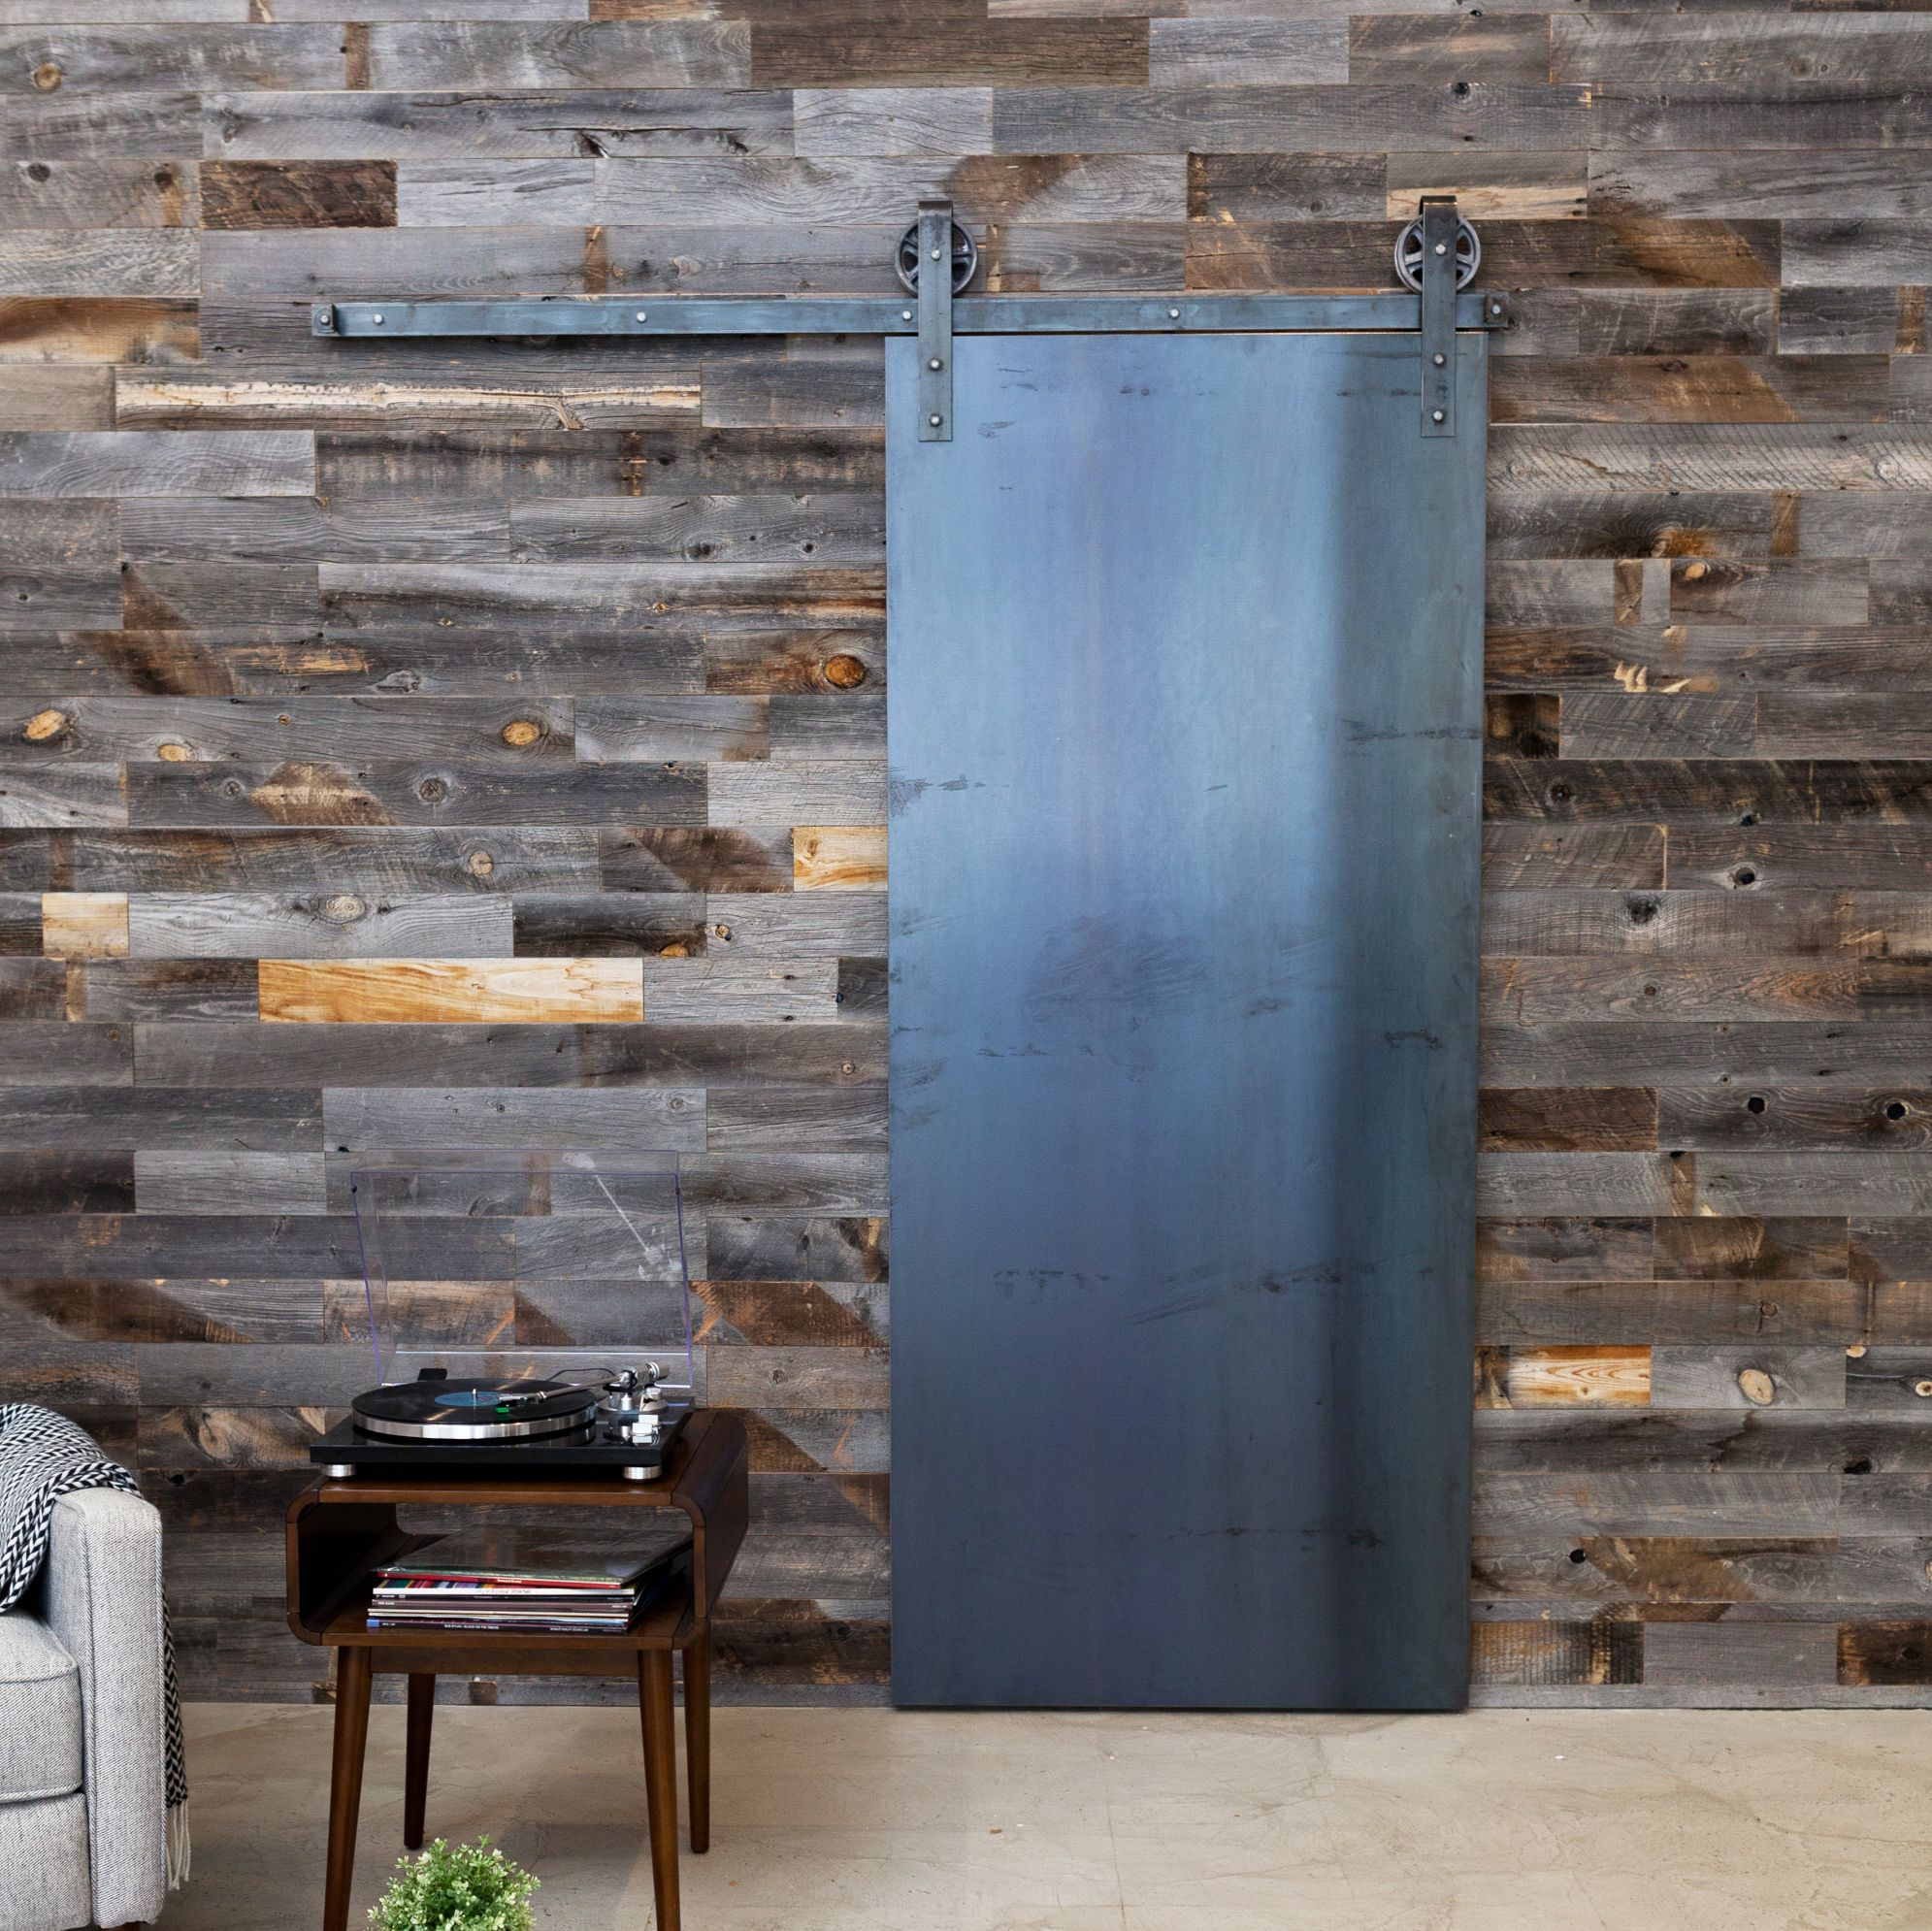 Overlapping Sliding Barn Doors Industrialpanelnew Industrial Style Pinterest Barn Doors